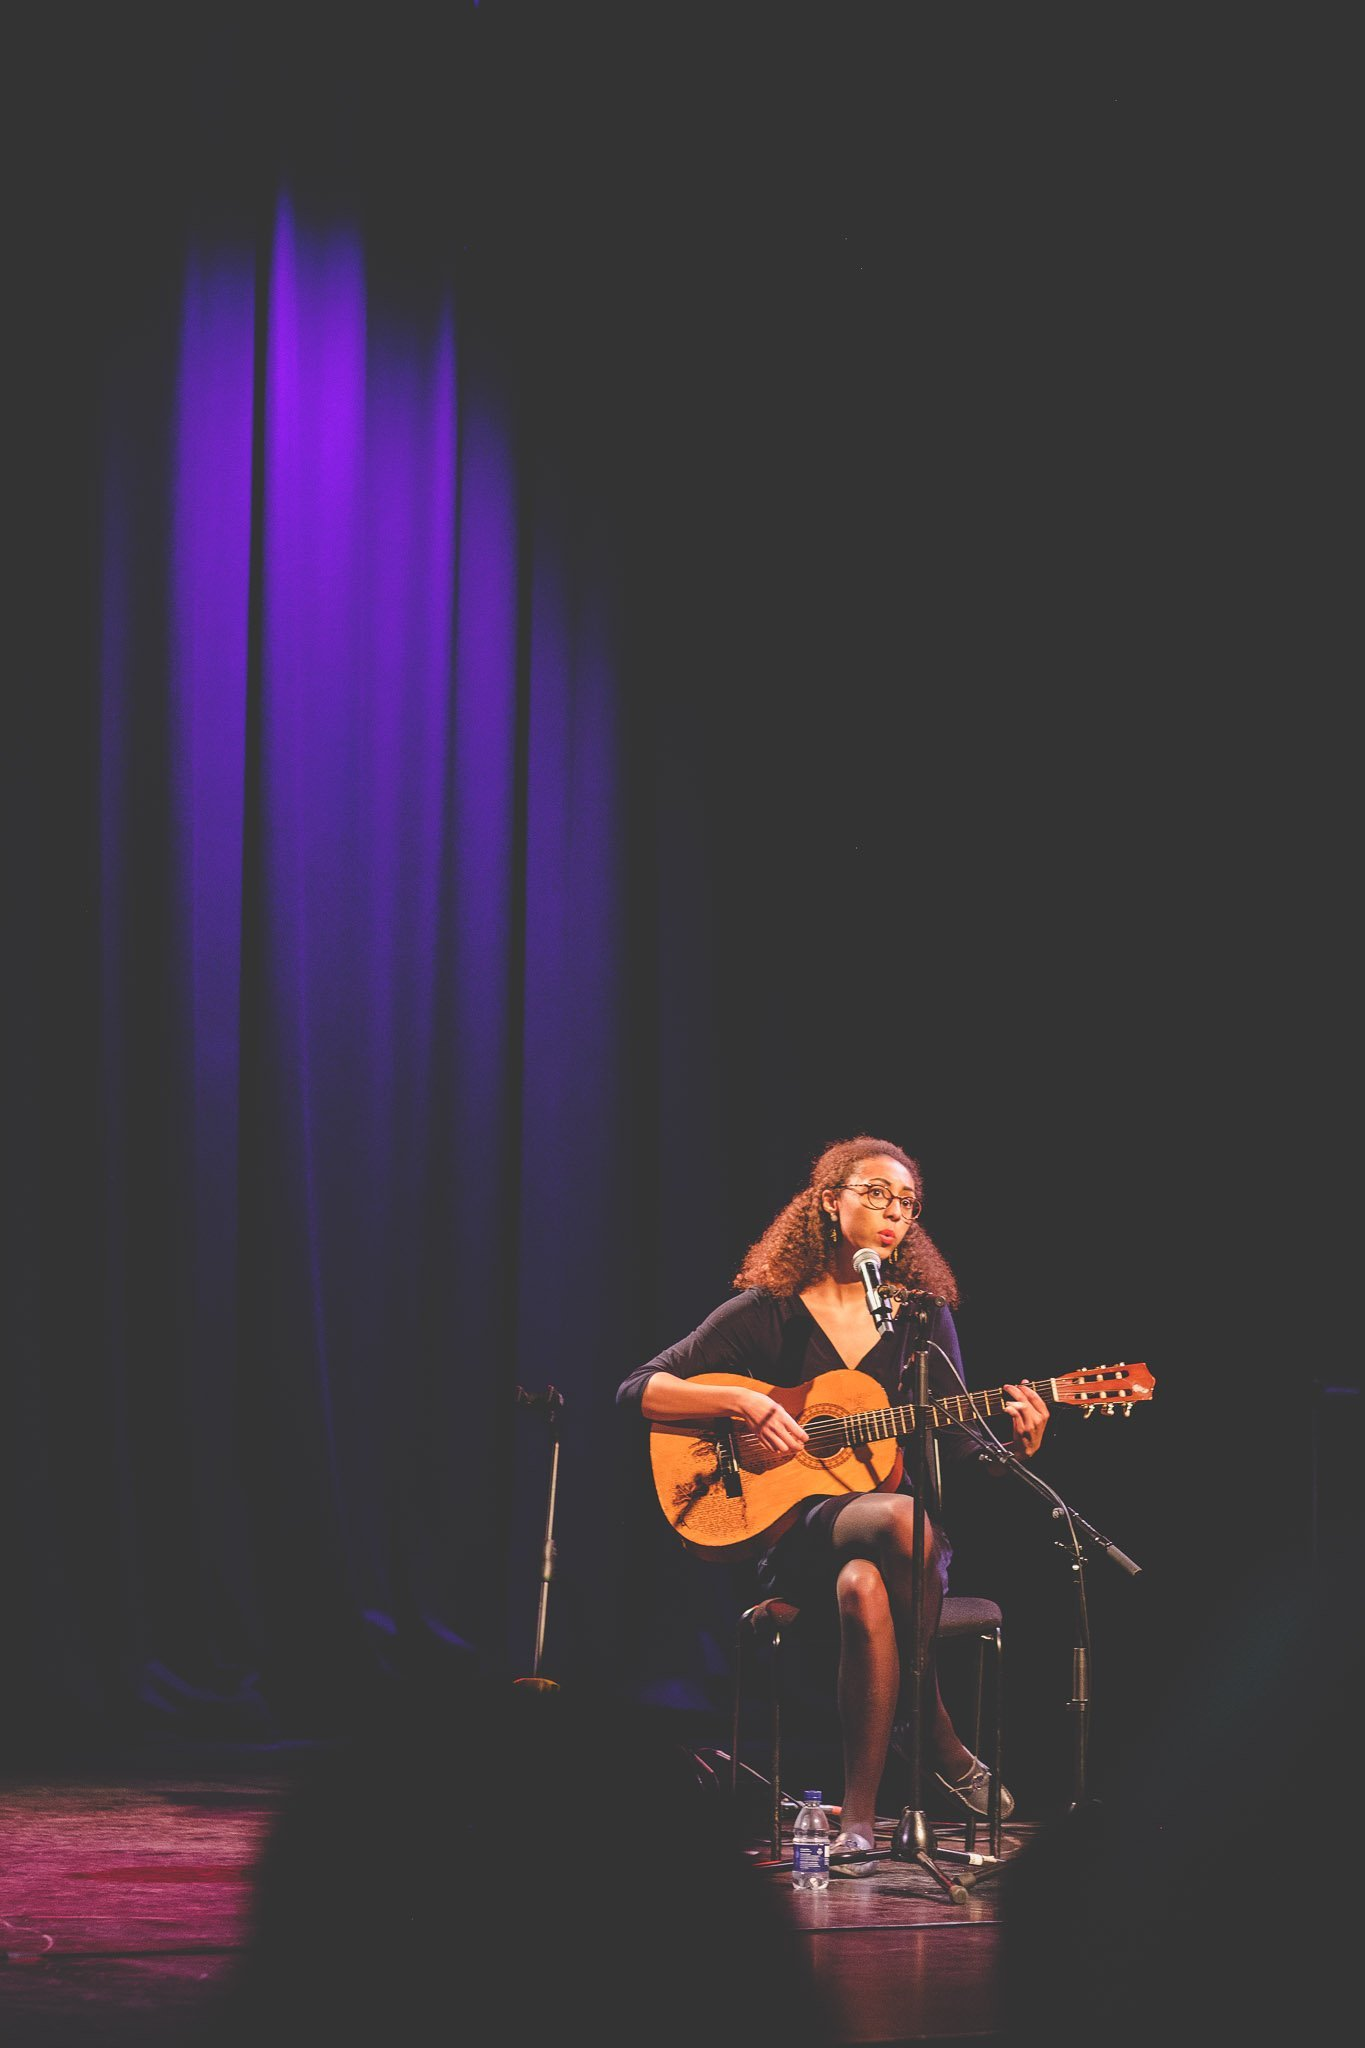 Jade Cuttle sitting on a chair playing acoustic guitar and singing at the Southbank Centre London. Photographed by thatthingyoupluck.